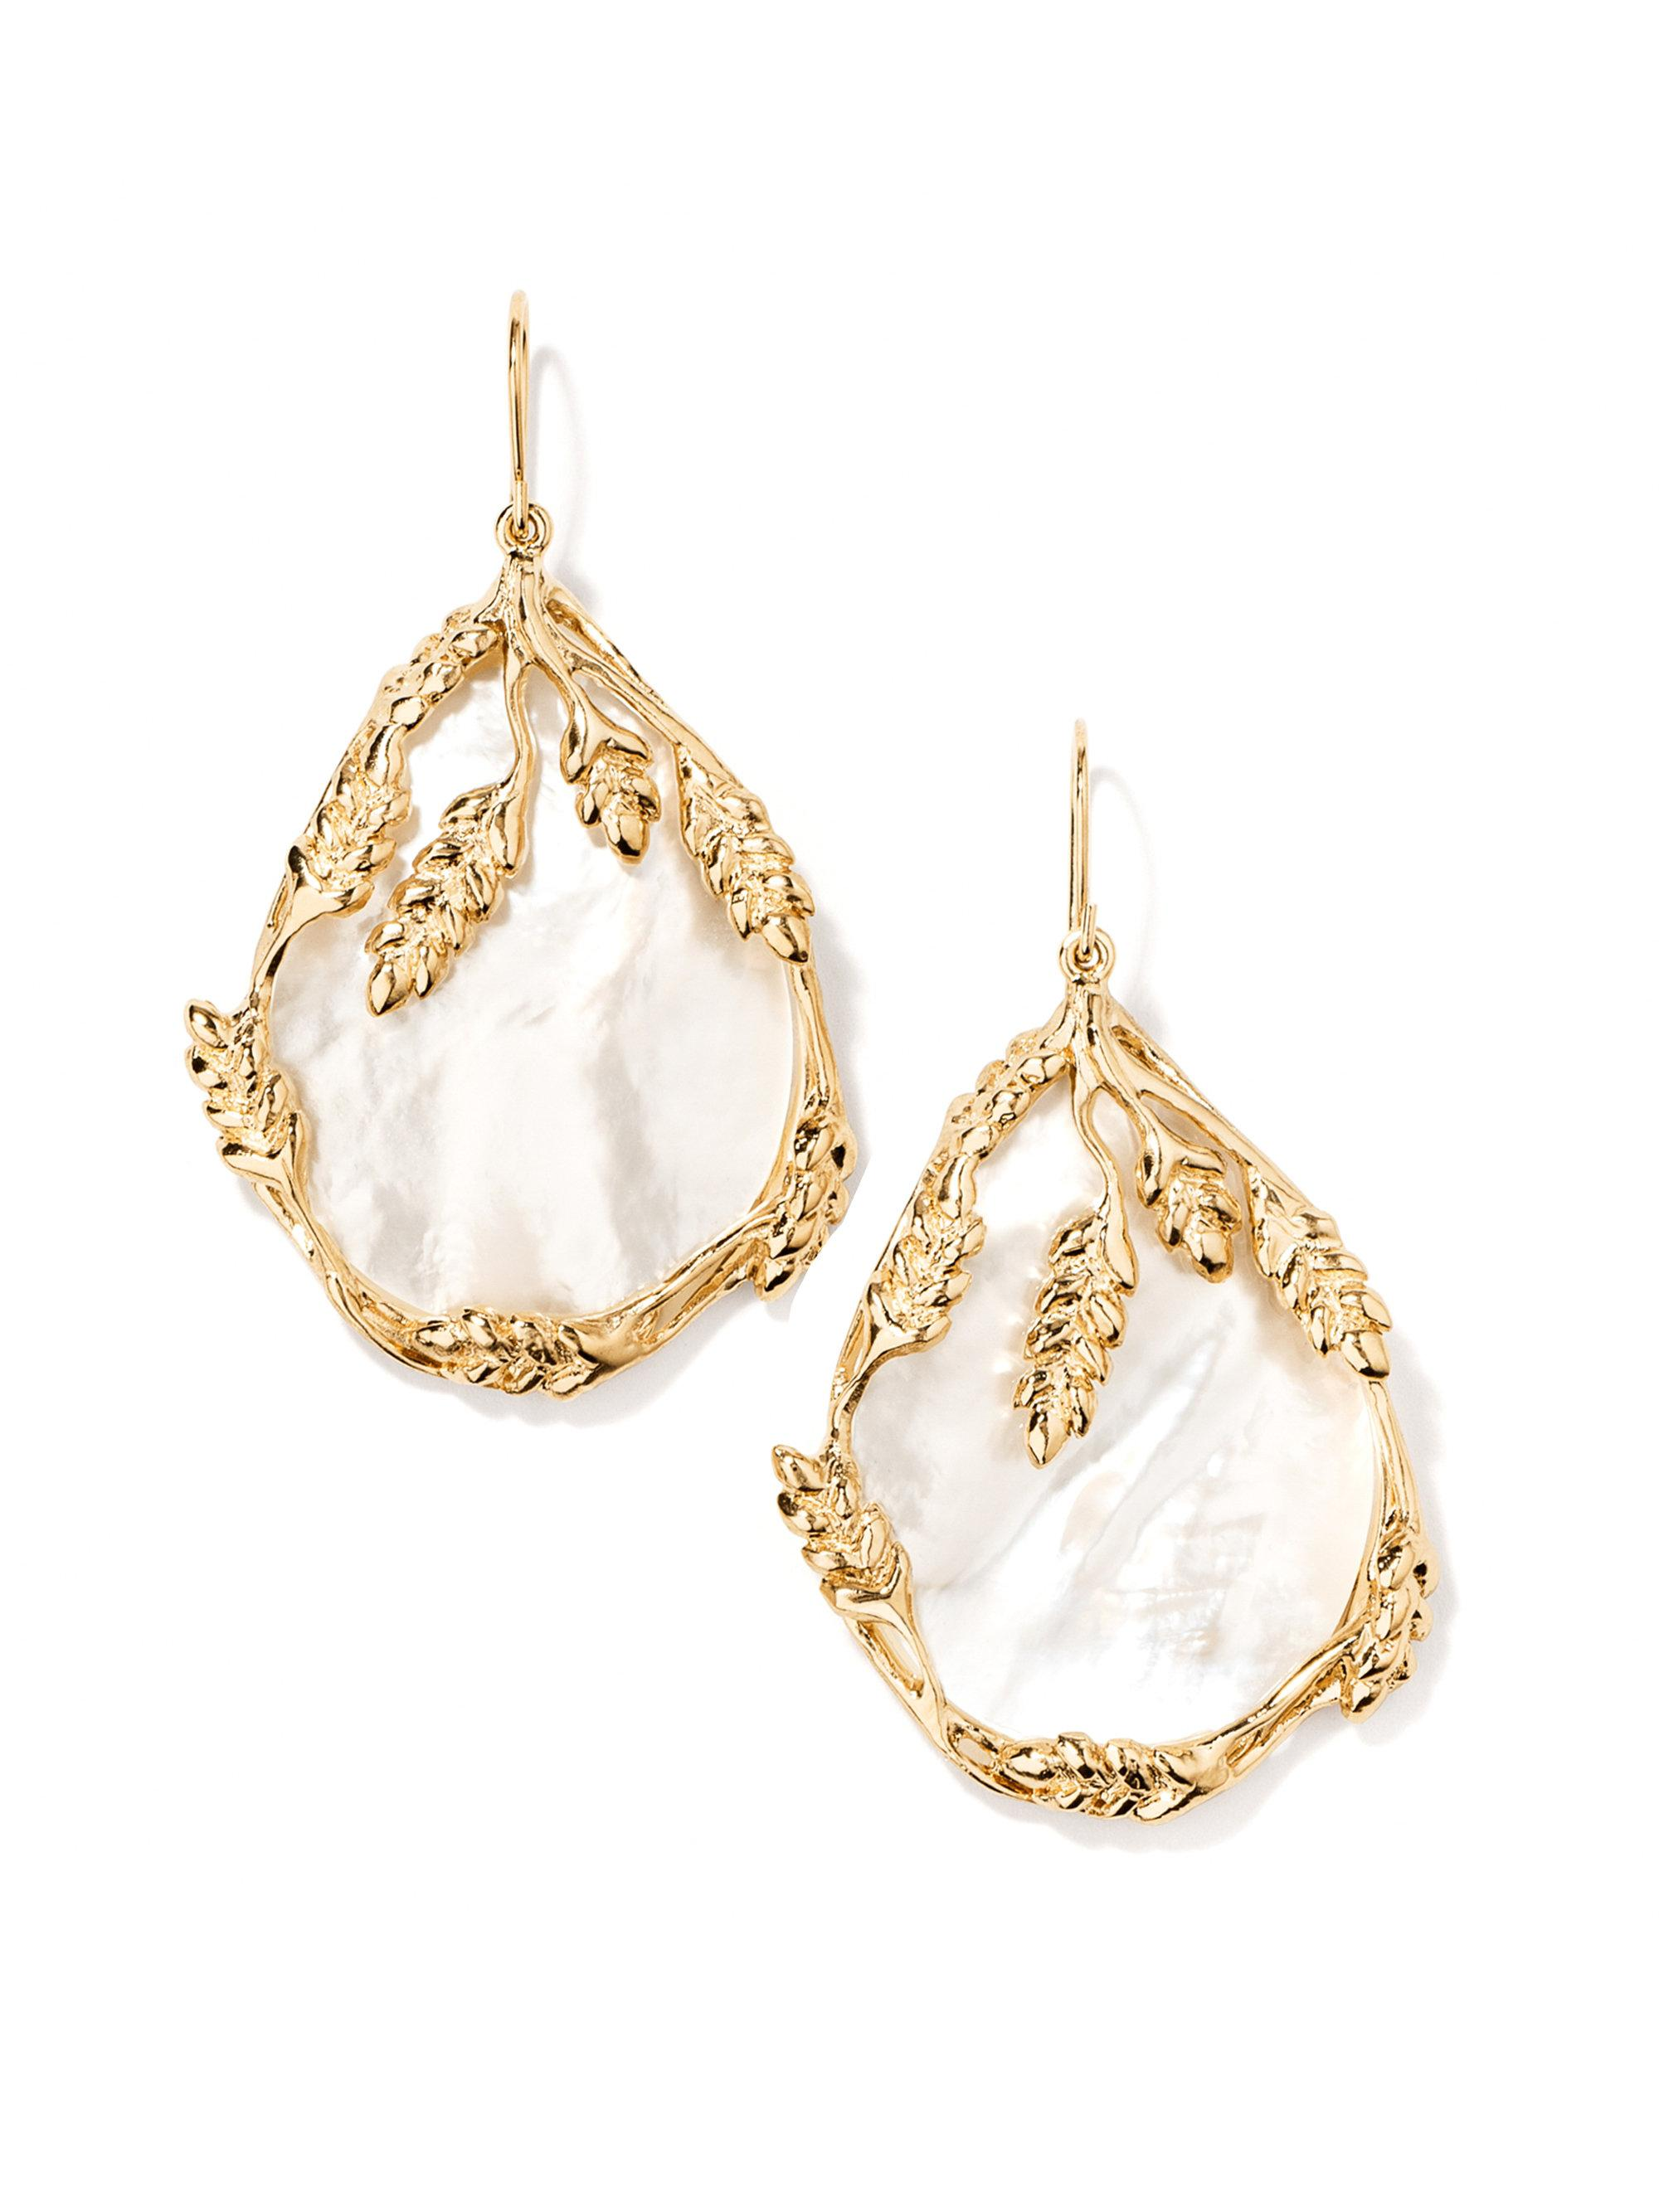 Aurélie Bidermann Francoise Pendant Earrings in 18K Gold-Plated Brass and Mother of Pearl